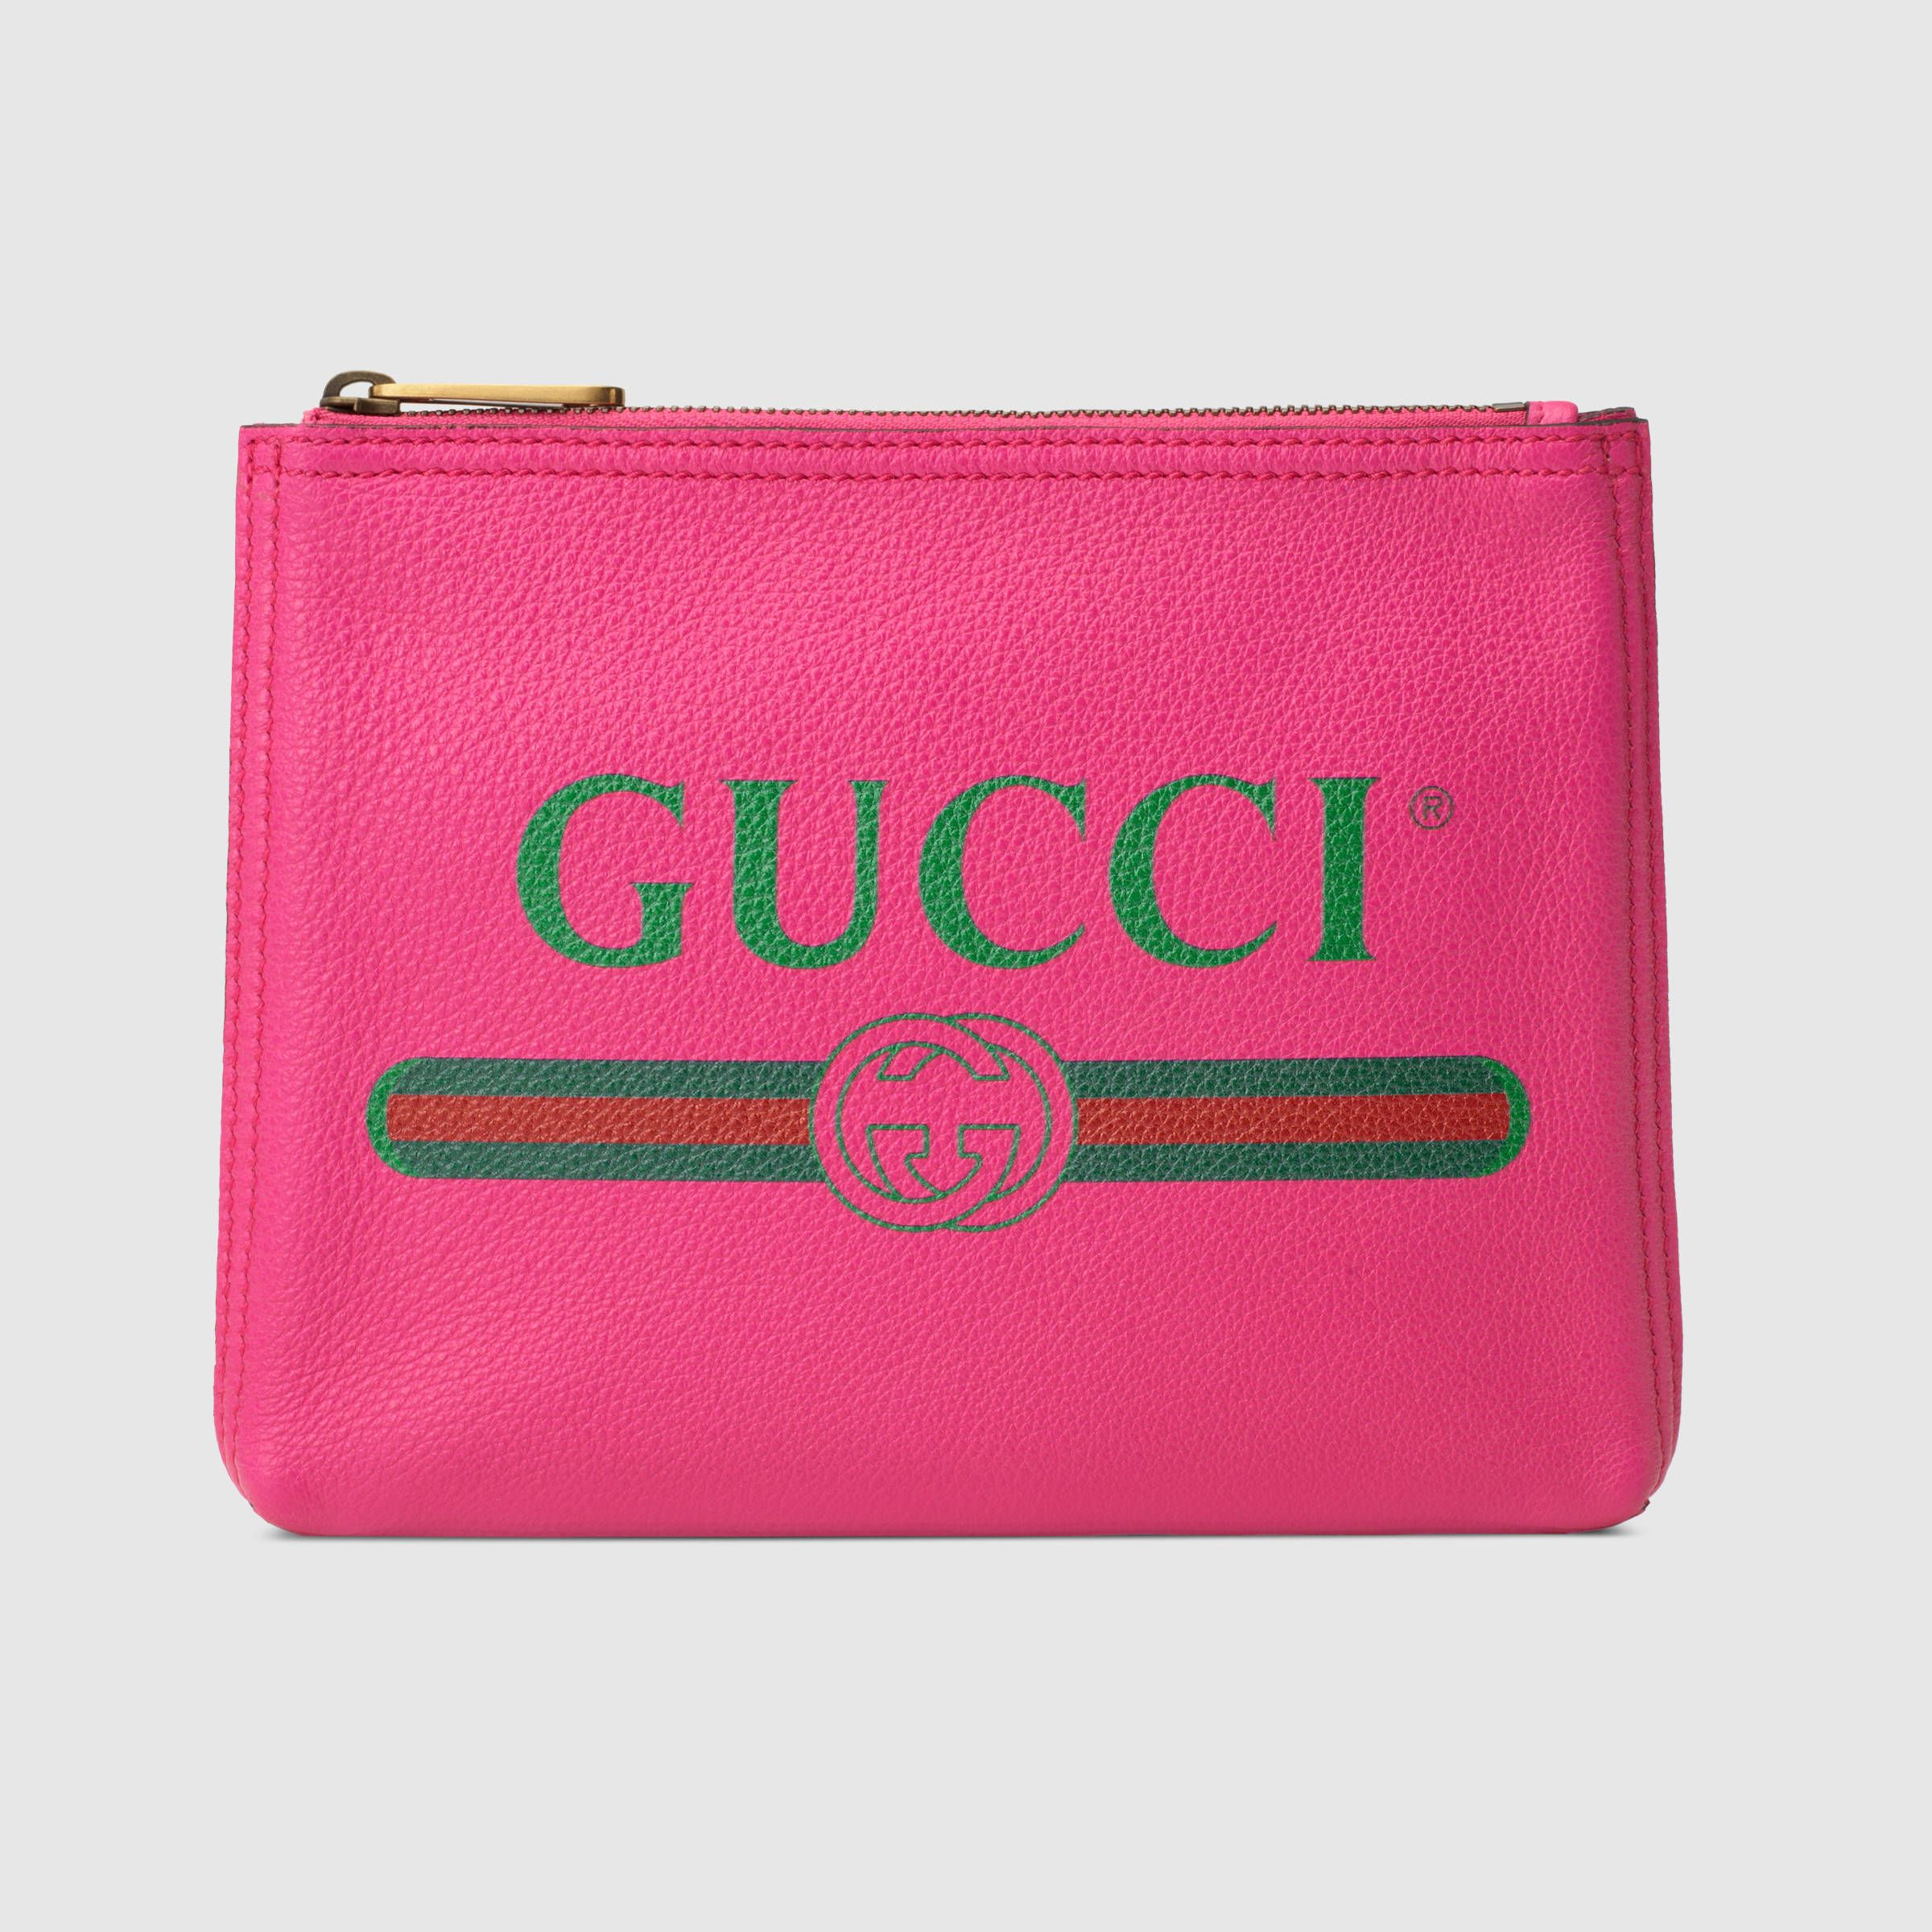 81b3255032 Gucci - Print leather small portfolio | SMALL LEATHER GOODS/TRAVEL ...